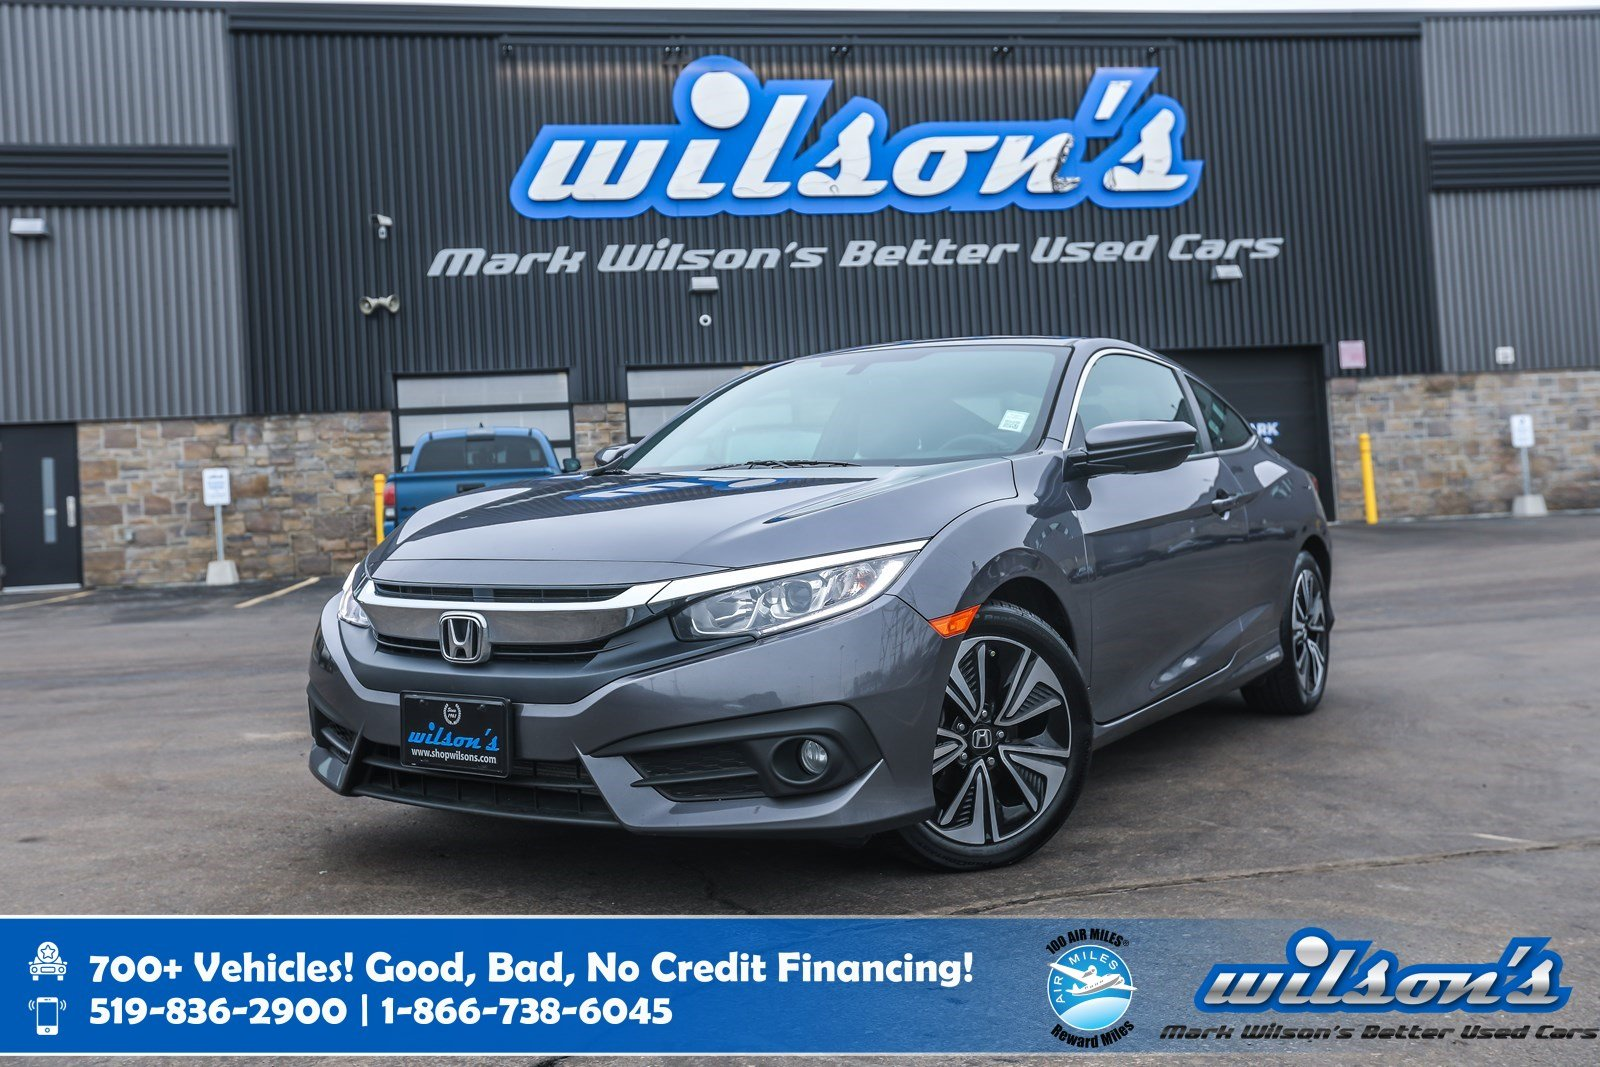 Certified Pre-Owned 2016 Honda Civic EX-T Coupe, Sunroof, Remote Start, Bluetooth, Heated Seats, Alloys & More!